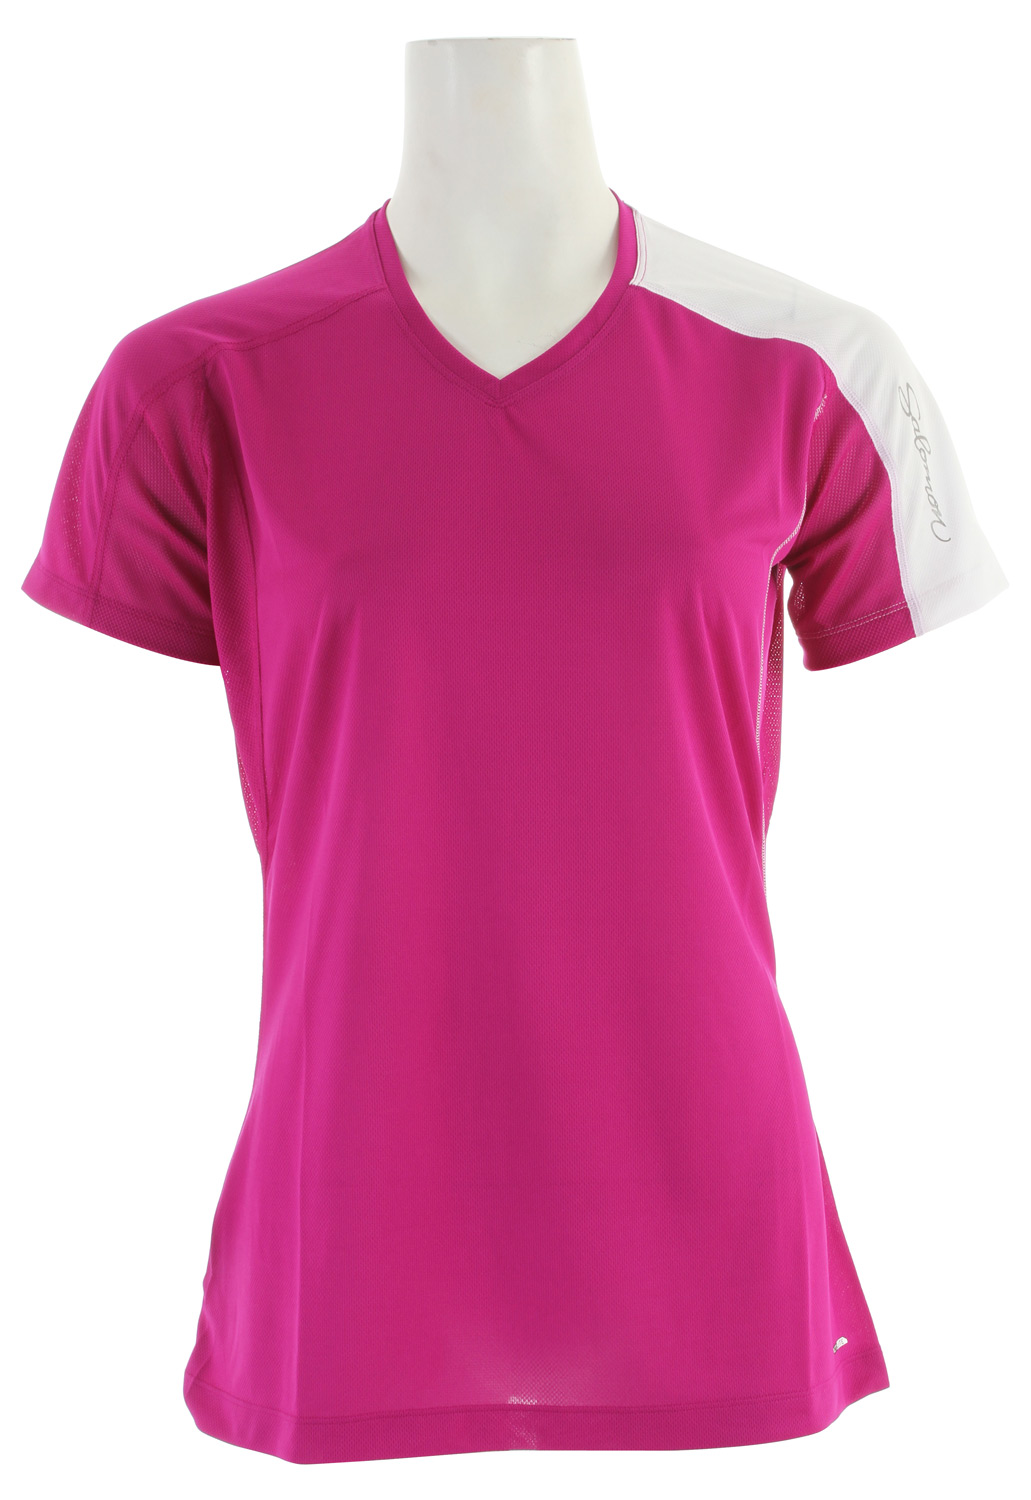 Fitness Relaxed fitting, versatile tee for running and outdoor sports with stretch actiLITE fabric and mesh underarm. Updated seam detailing and stash pocket.Key Features of the Salomon Trail IV T-Shirt: SMART SKIN Flatlock Seams Stash Pocket Reflective Branding Front & Back actiLITE Stretch Mesh actiLITE Poly Mock Eyelet Relax Fit - $22.95